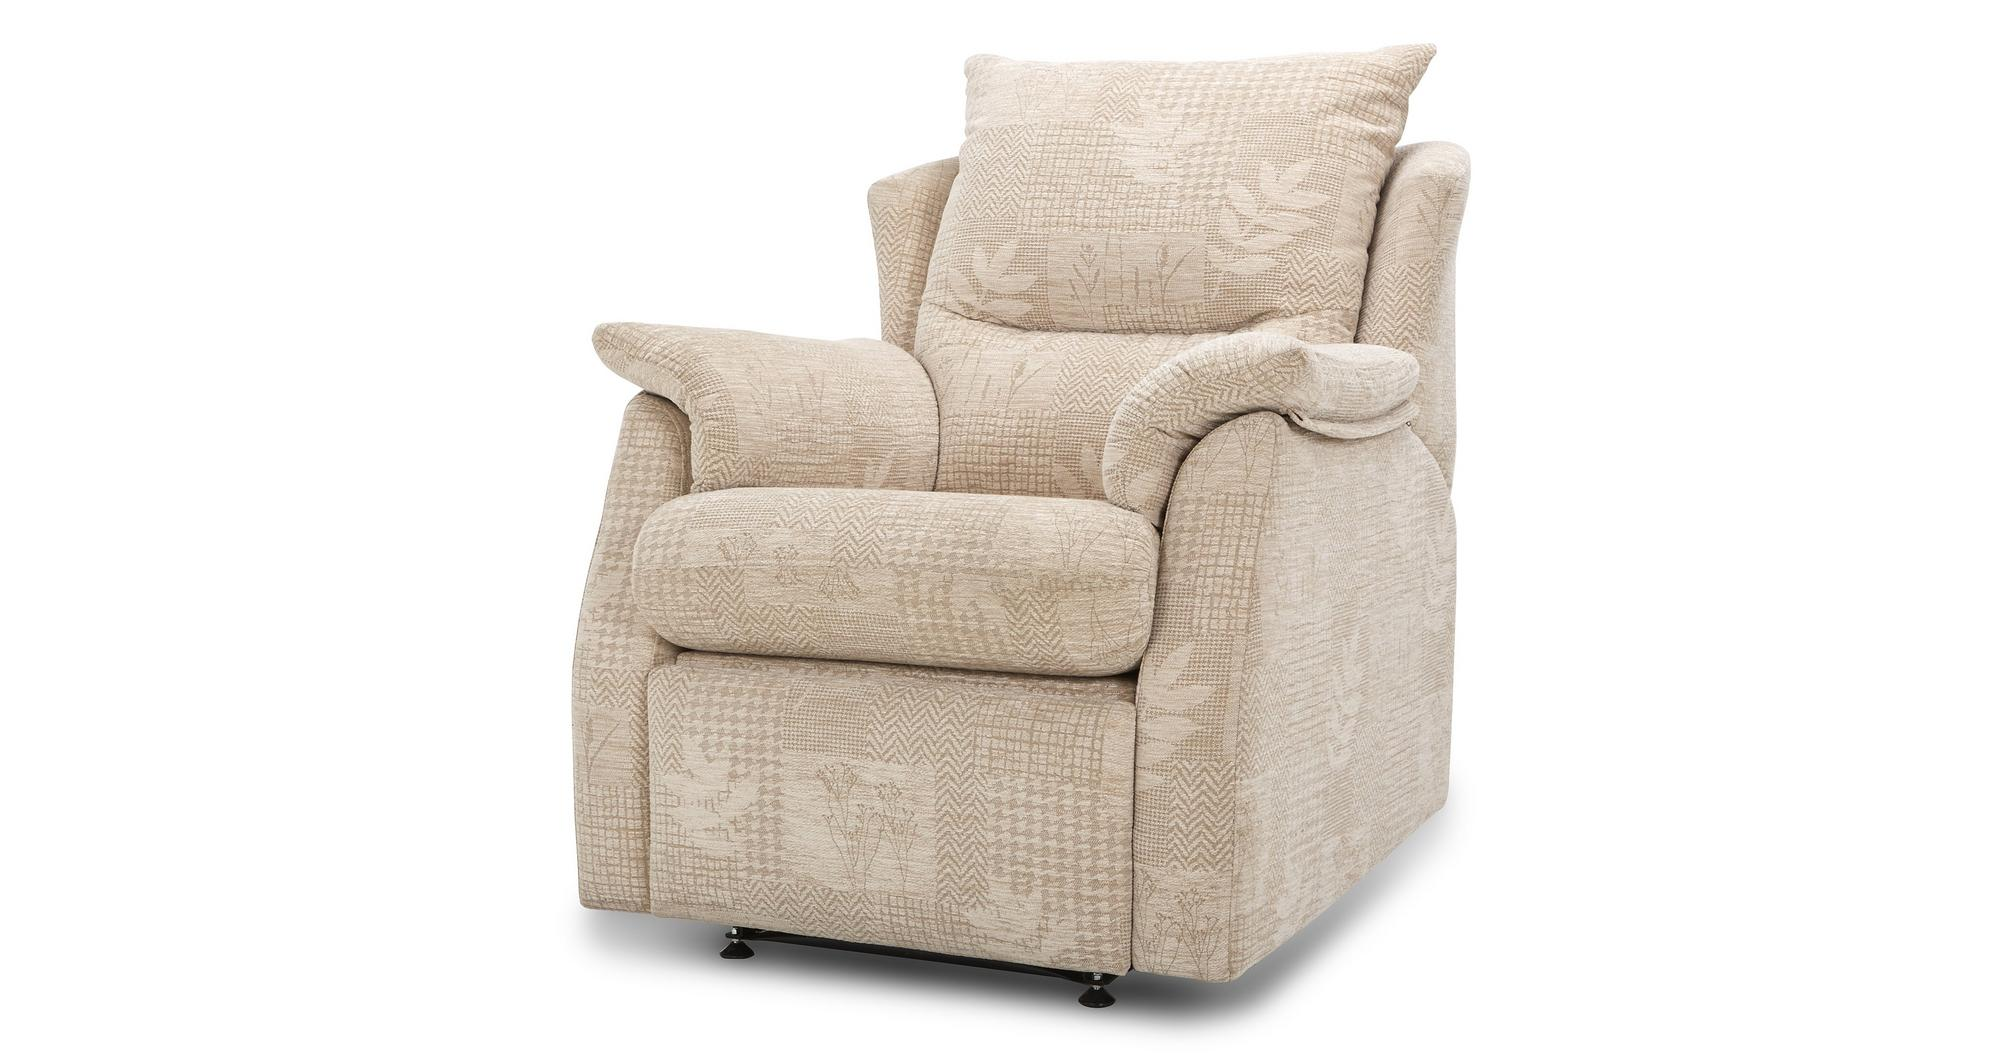 Dfs stow cream fabric small 2 seater sofa and manual for Small cream chair